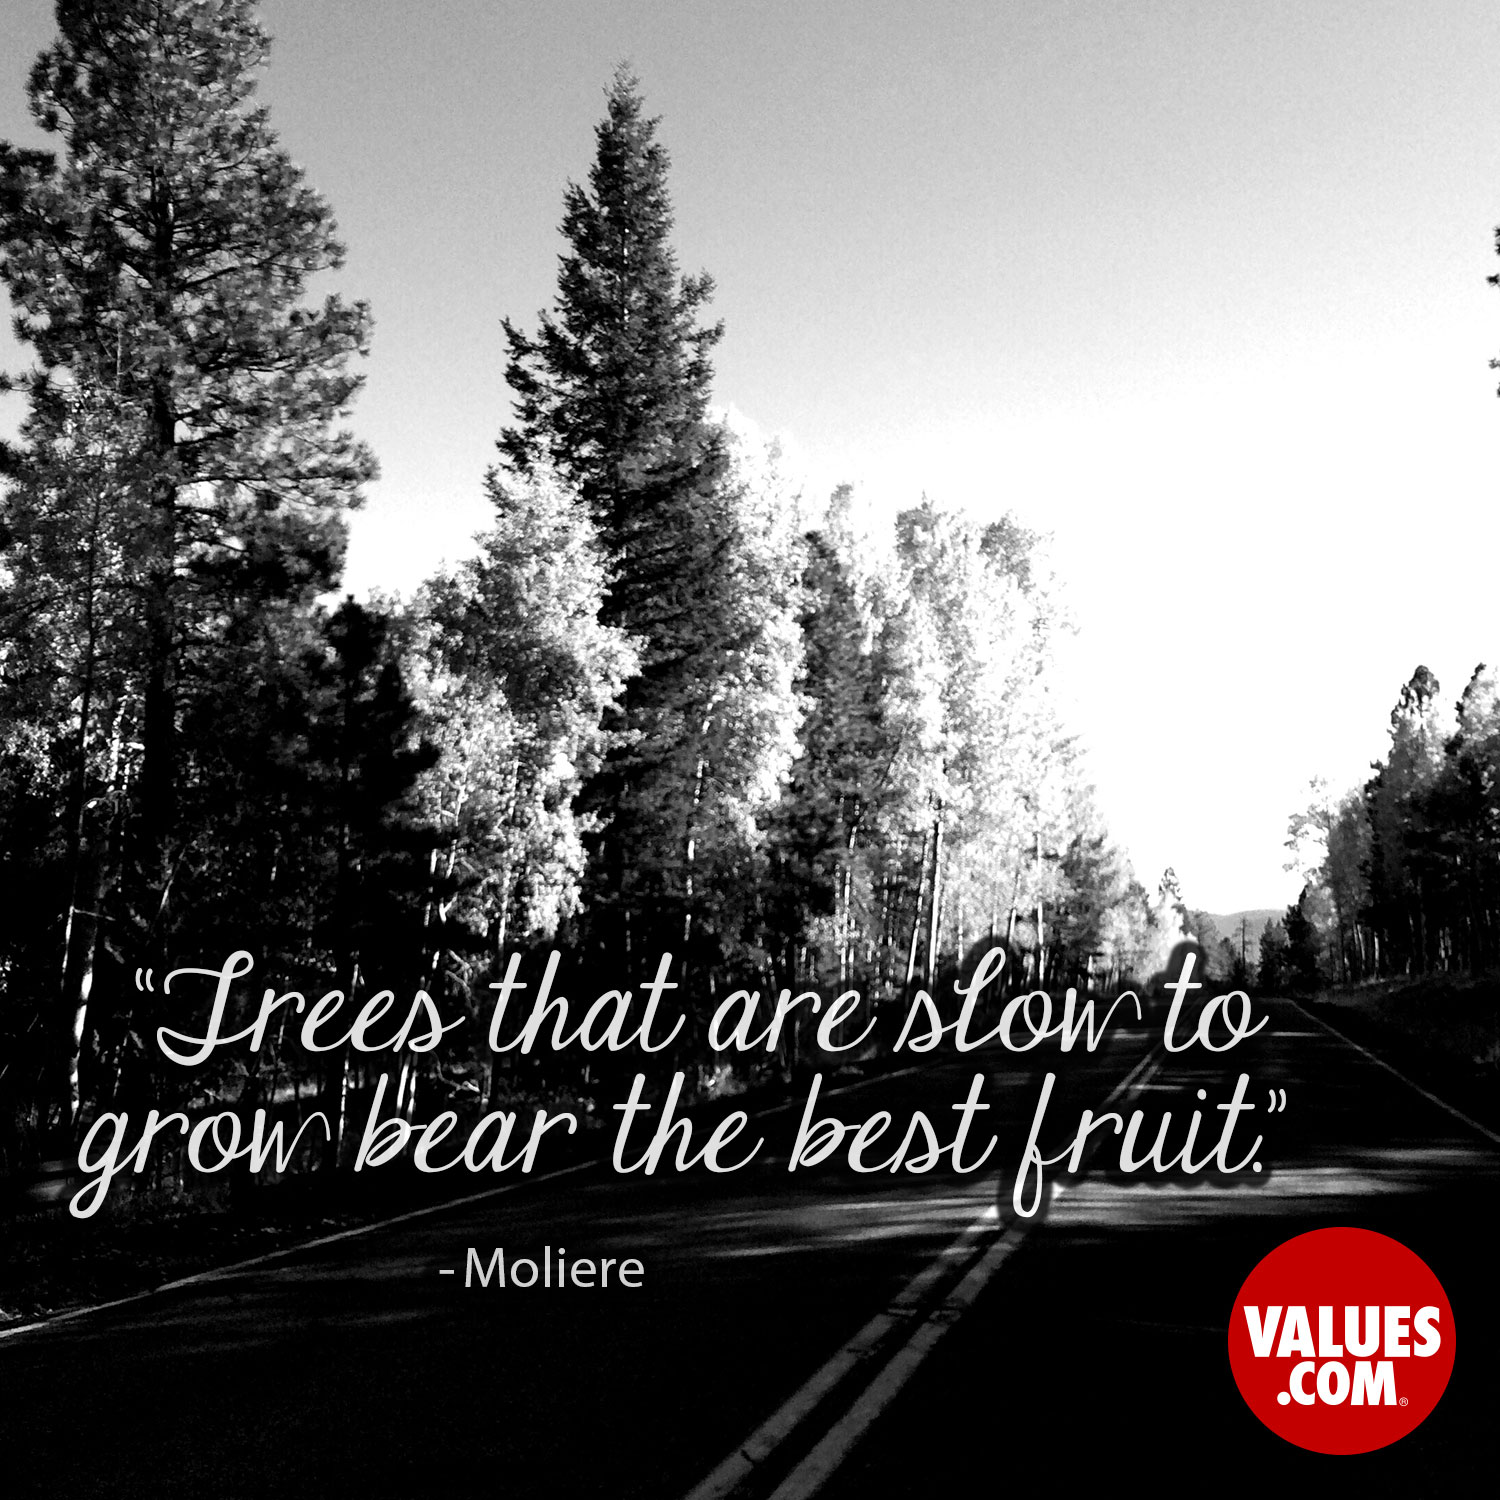 Trees that are slow to grow bear the best fruit. —Moliere